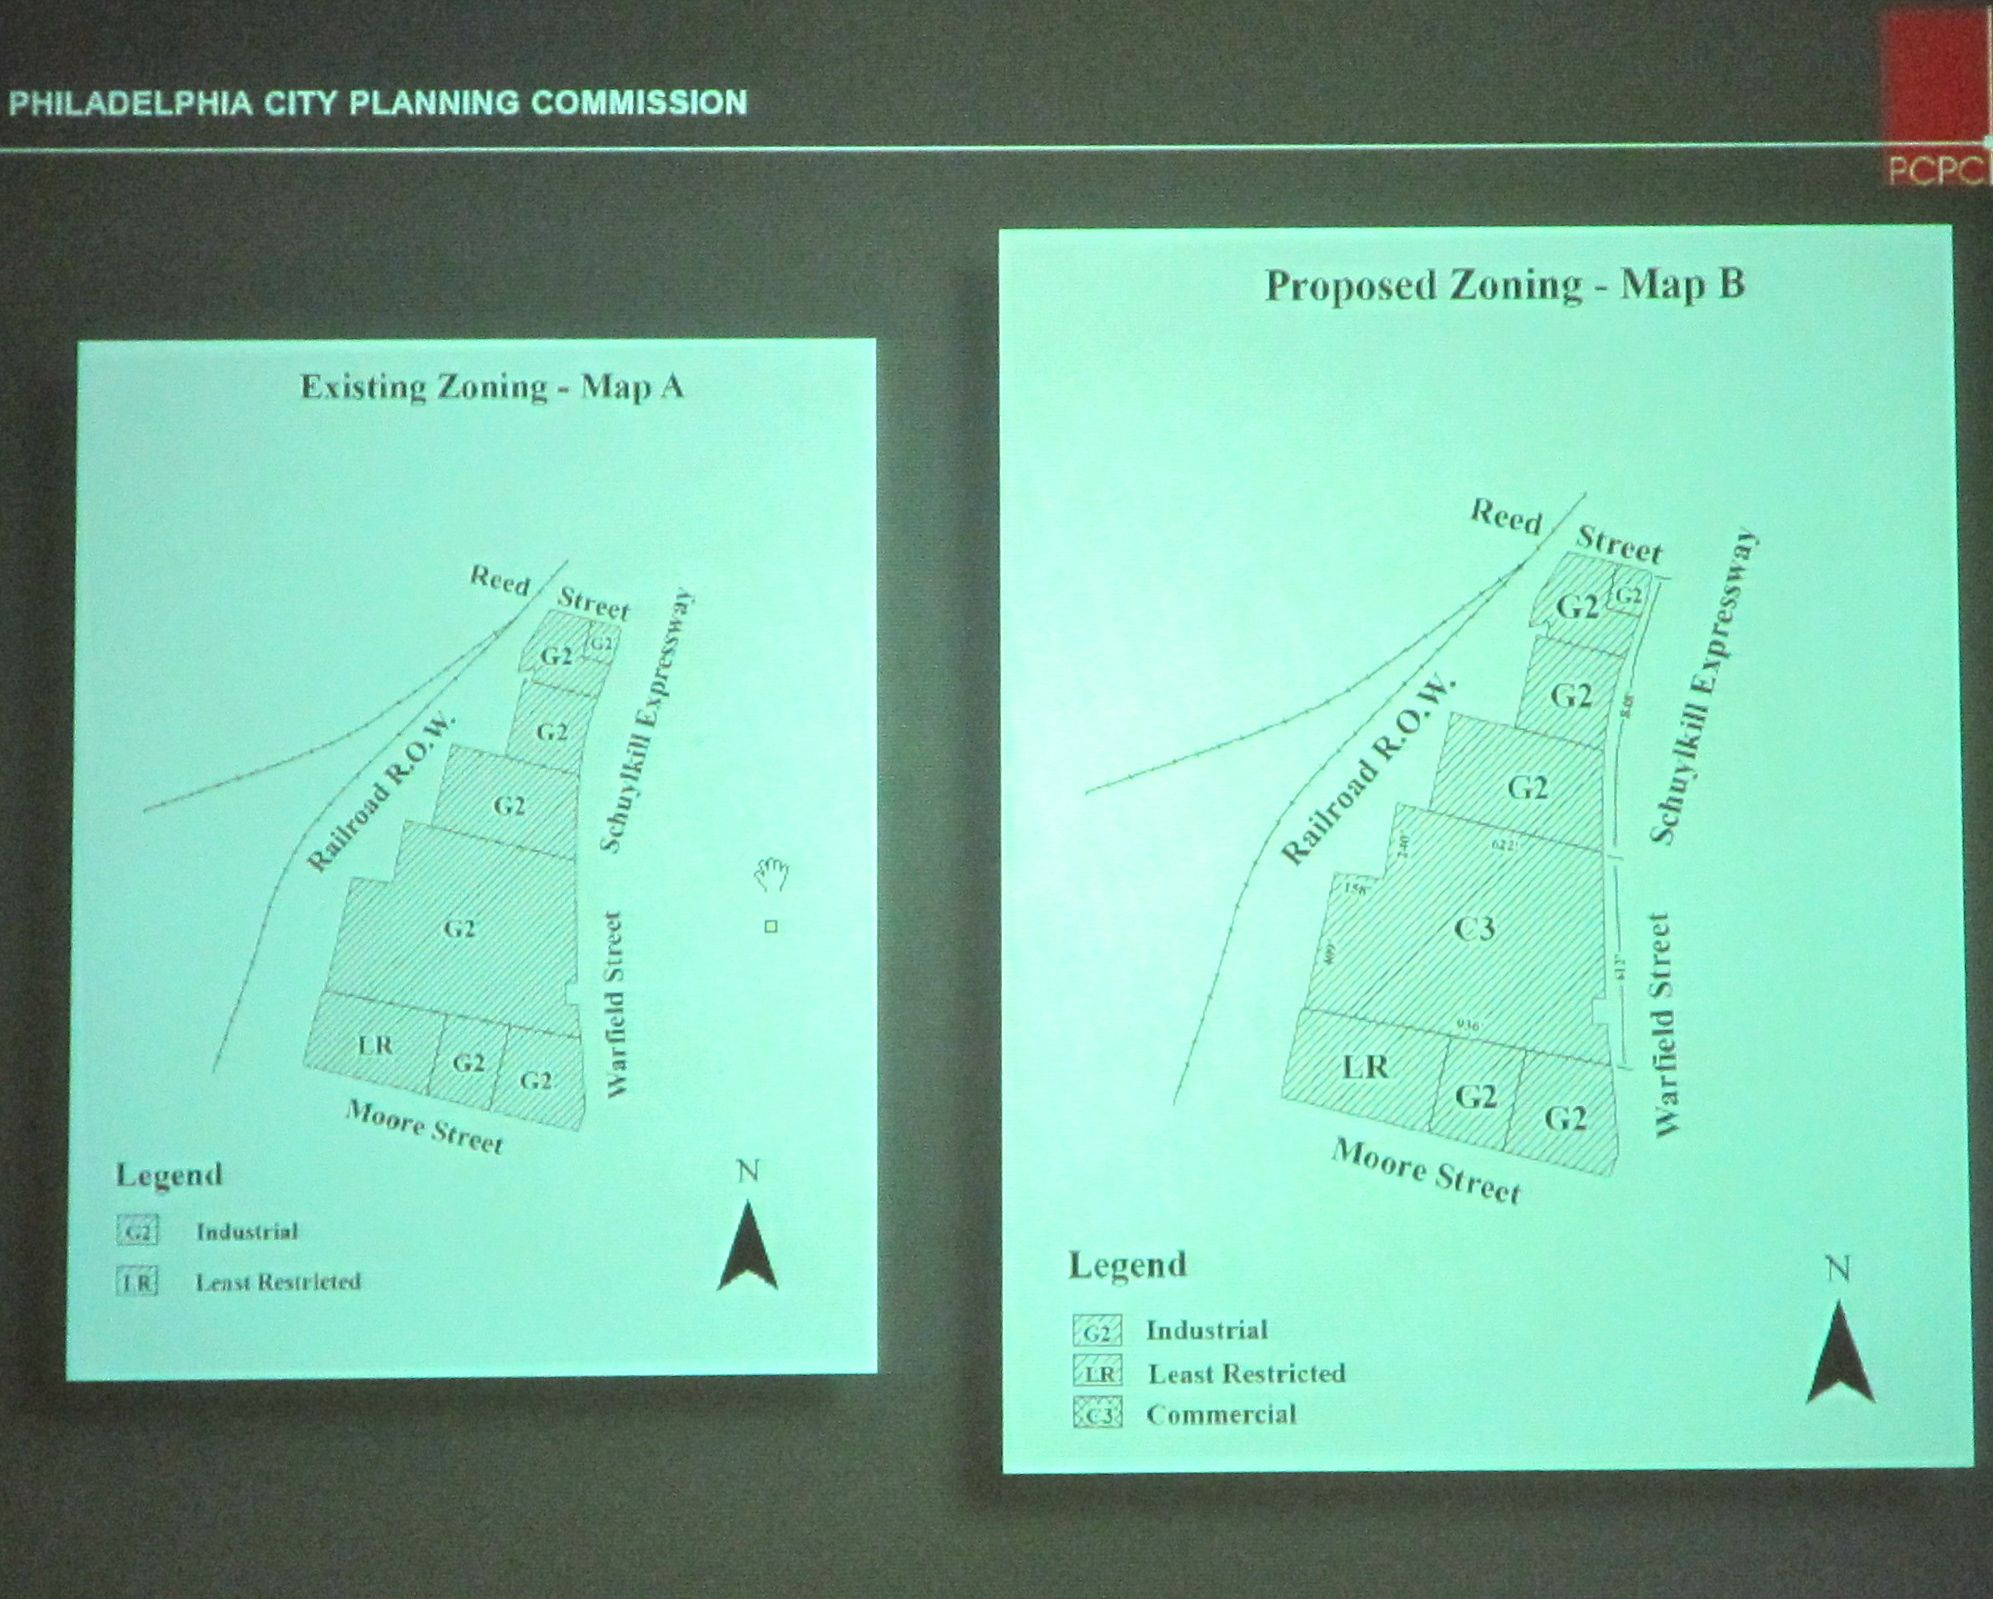 PCPC: A day of comp plans, urban growth and zoning denials